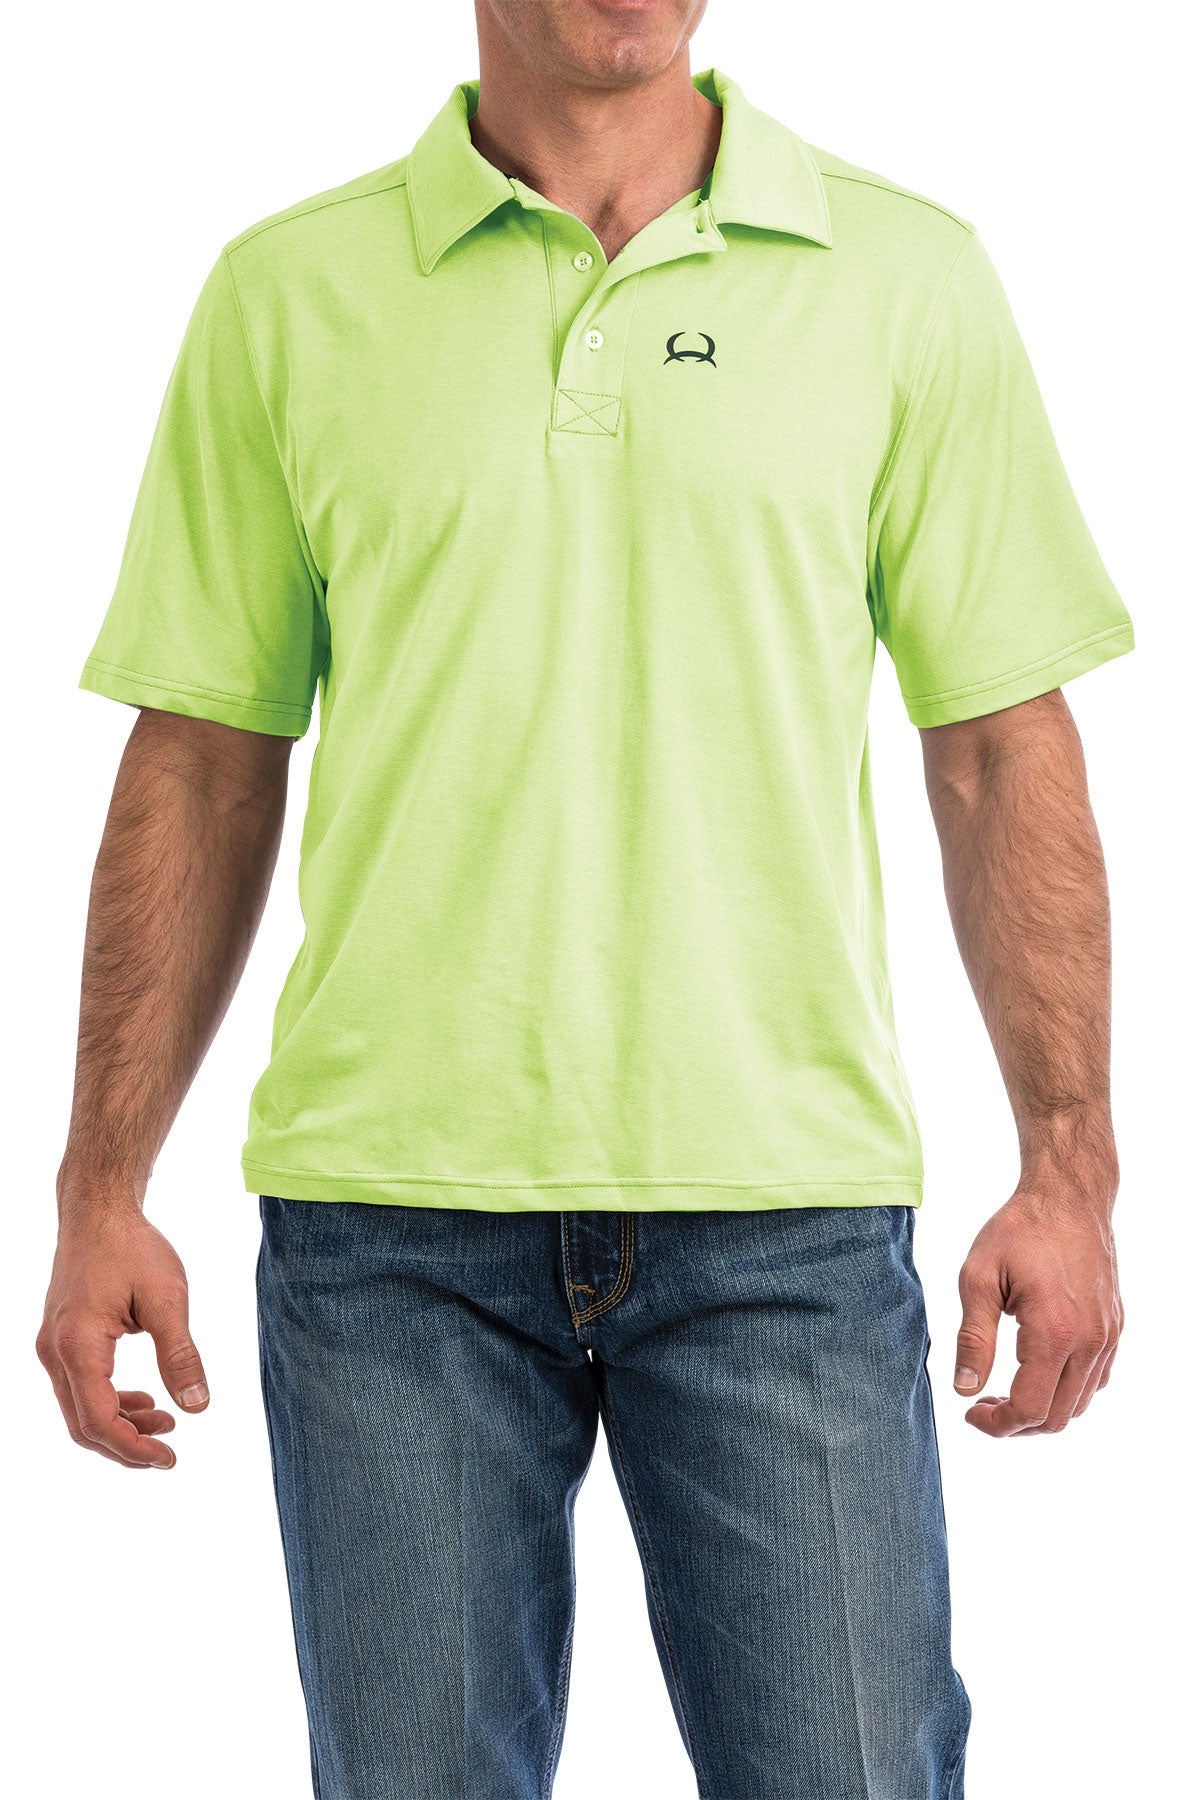 Cinch ArenaFlex Men's Polo Shirt